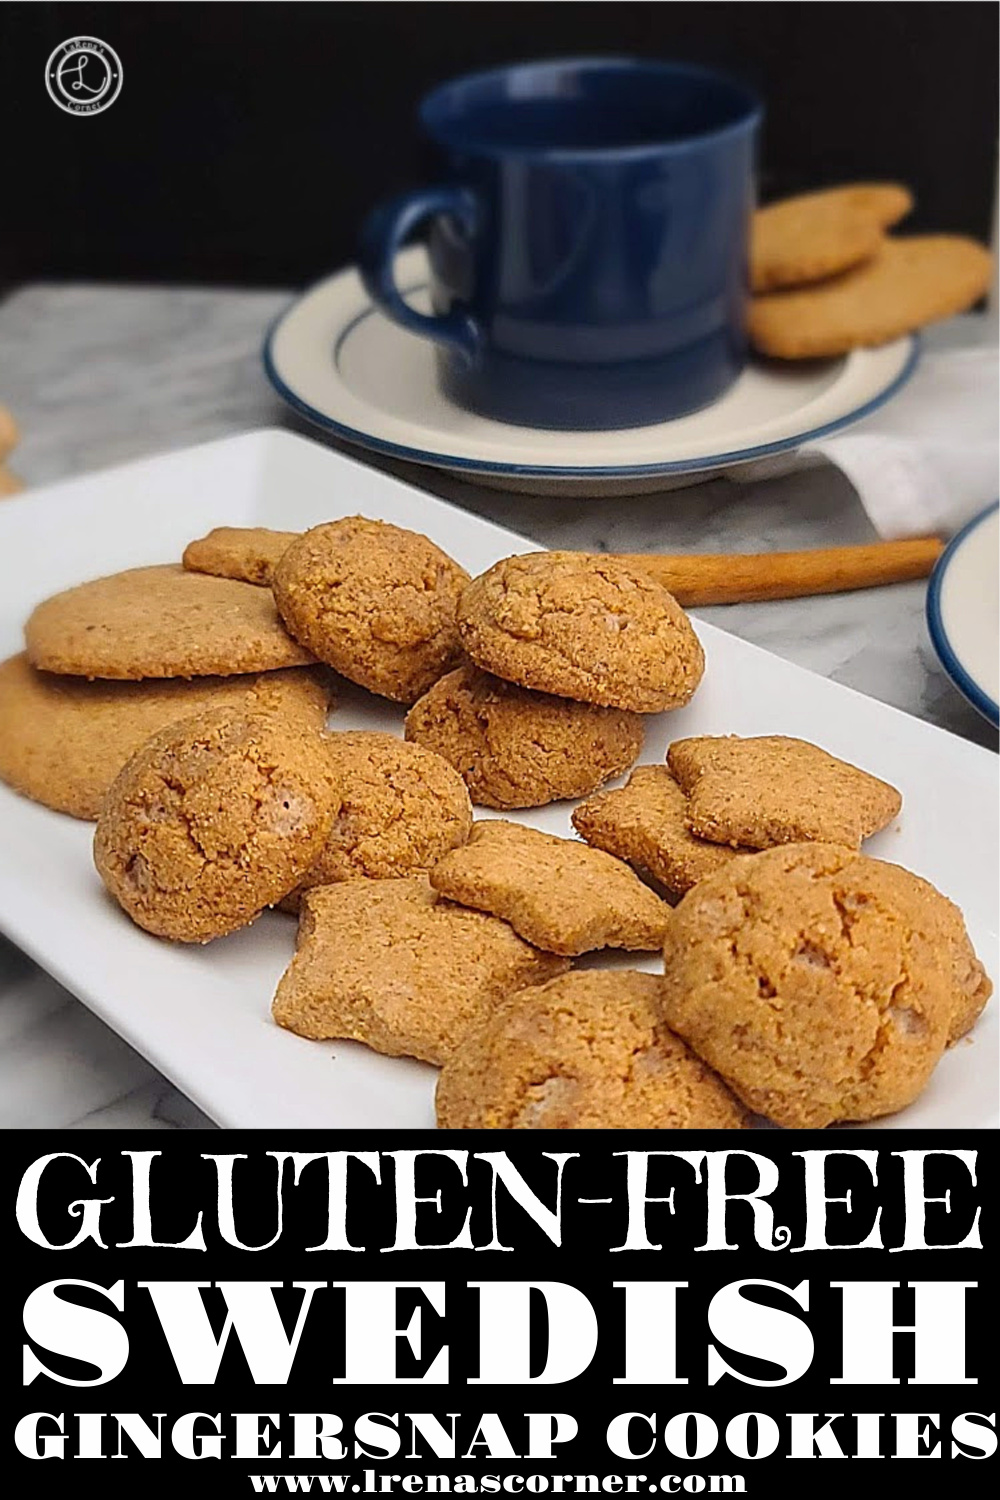 Gluten-Free Swedish Gingersnap Cookies on a plater.